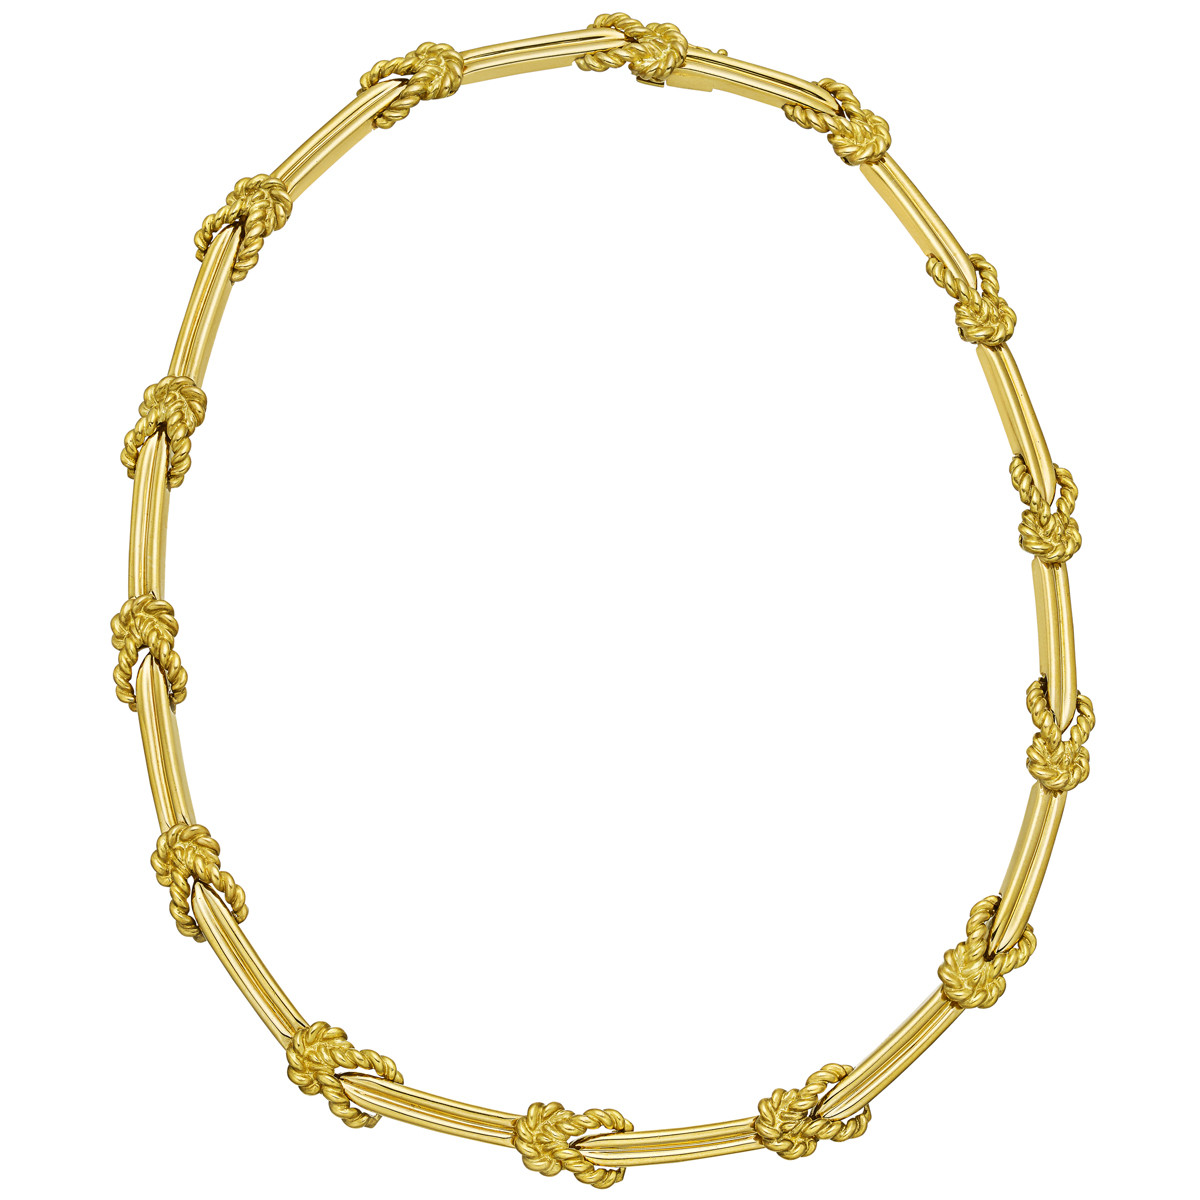 18k Yellow Gold Rope Knot & Bar Link Necklace